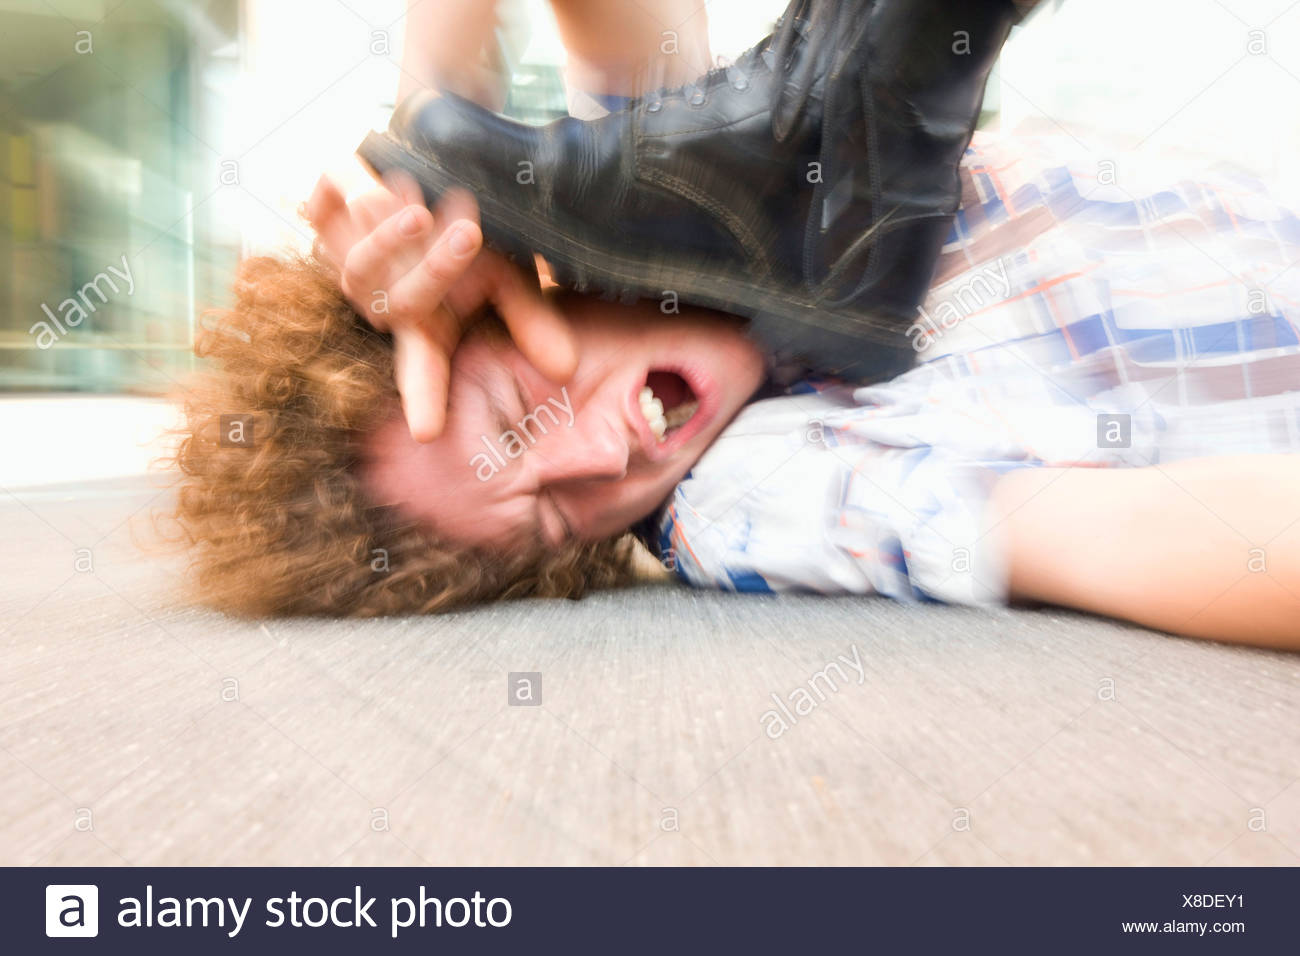 Young man lying on ground being stepped on by someone